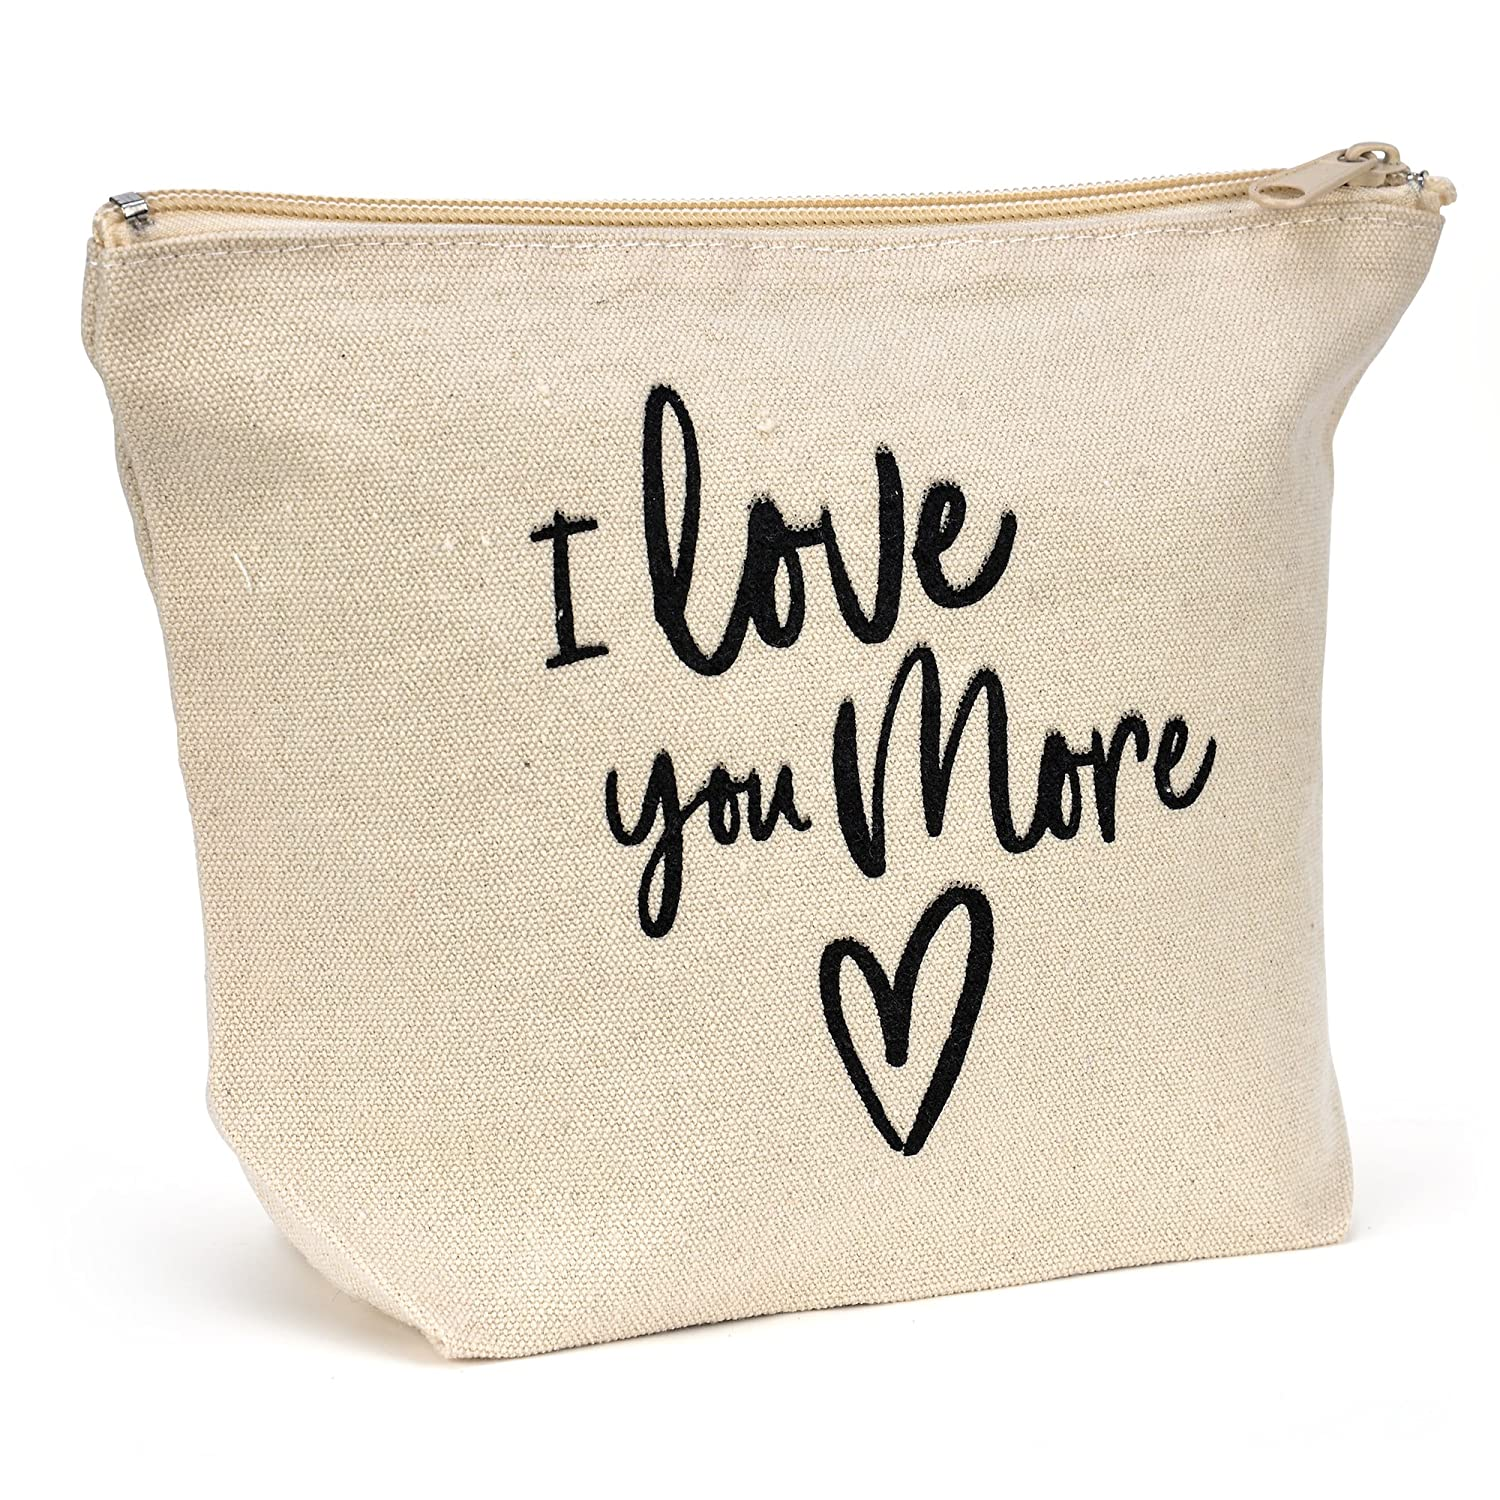 Natural Canvas Makeup Bag – I Love You More – Friendship Gift – Fun Canvas Travel Bag, Small Canvas Bag For Travel Carryon – 9 x 7 x 3